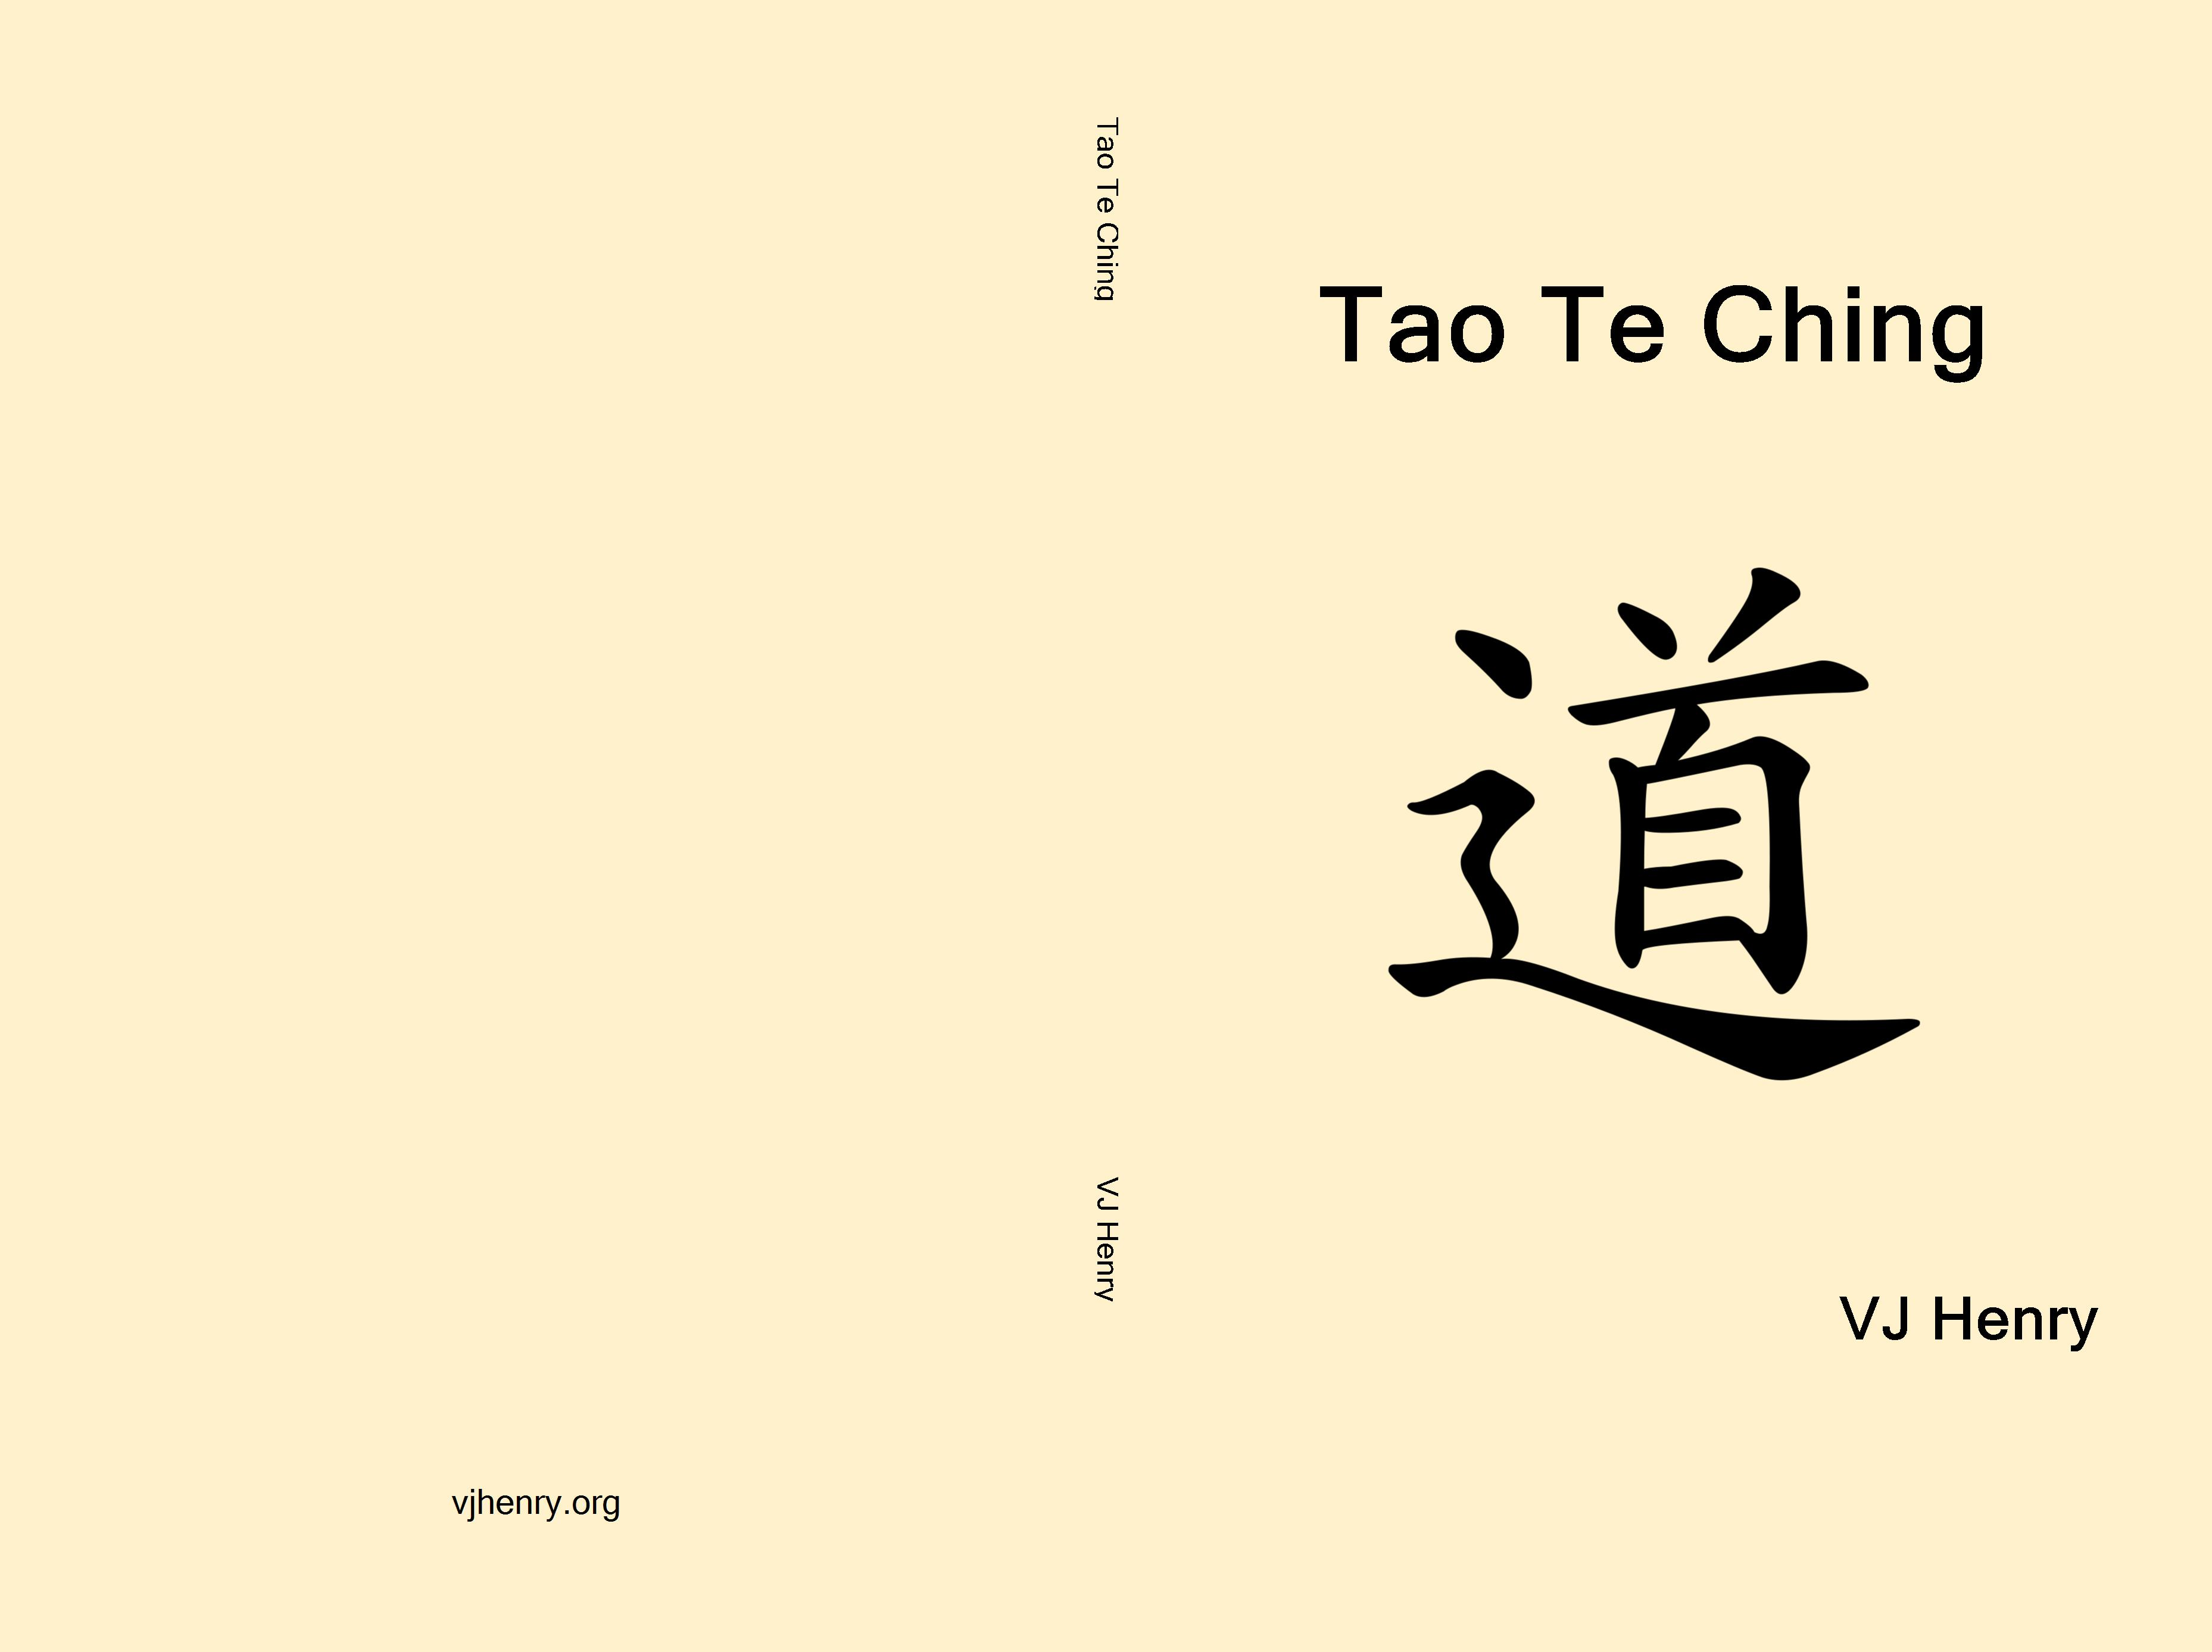 tao te ching Tao te ching - lao tzu - chapter 38 a truly good man is not aware of his goodness, and is therefore good a foolish man tries to be good, and is therefore not good.